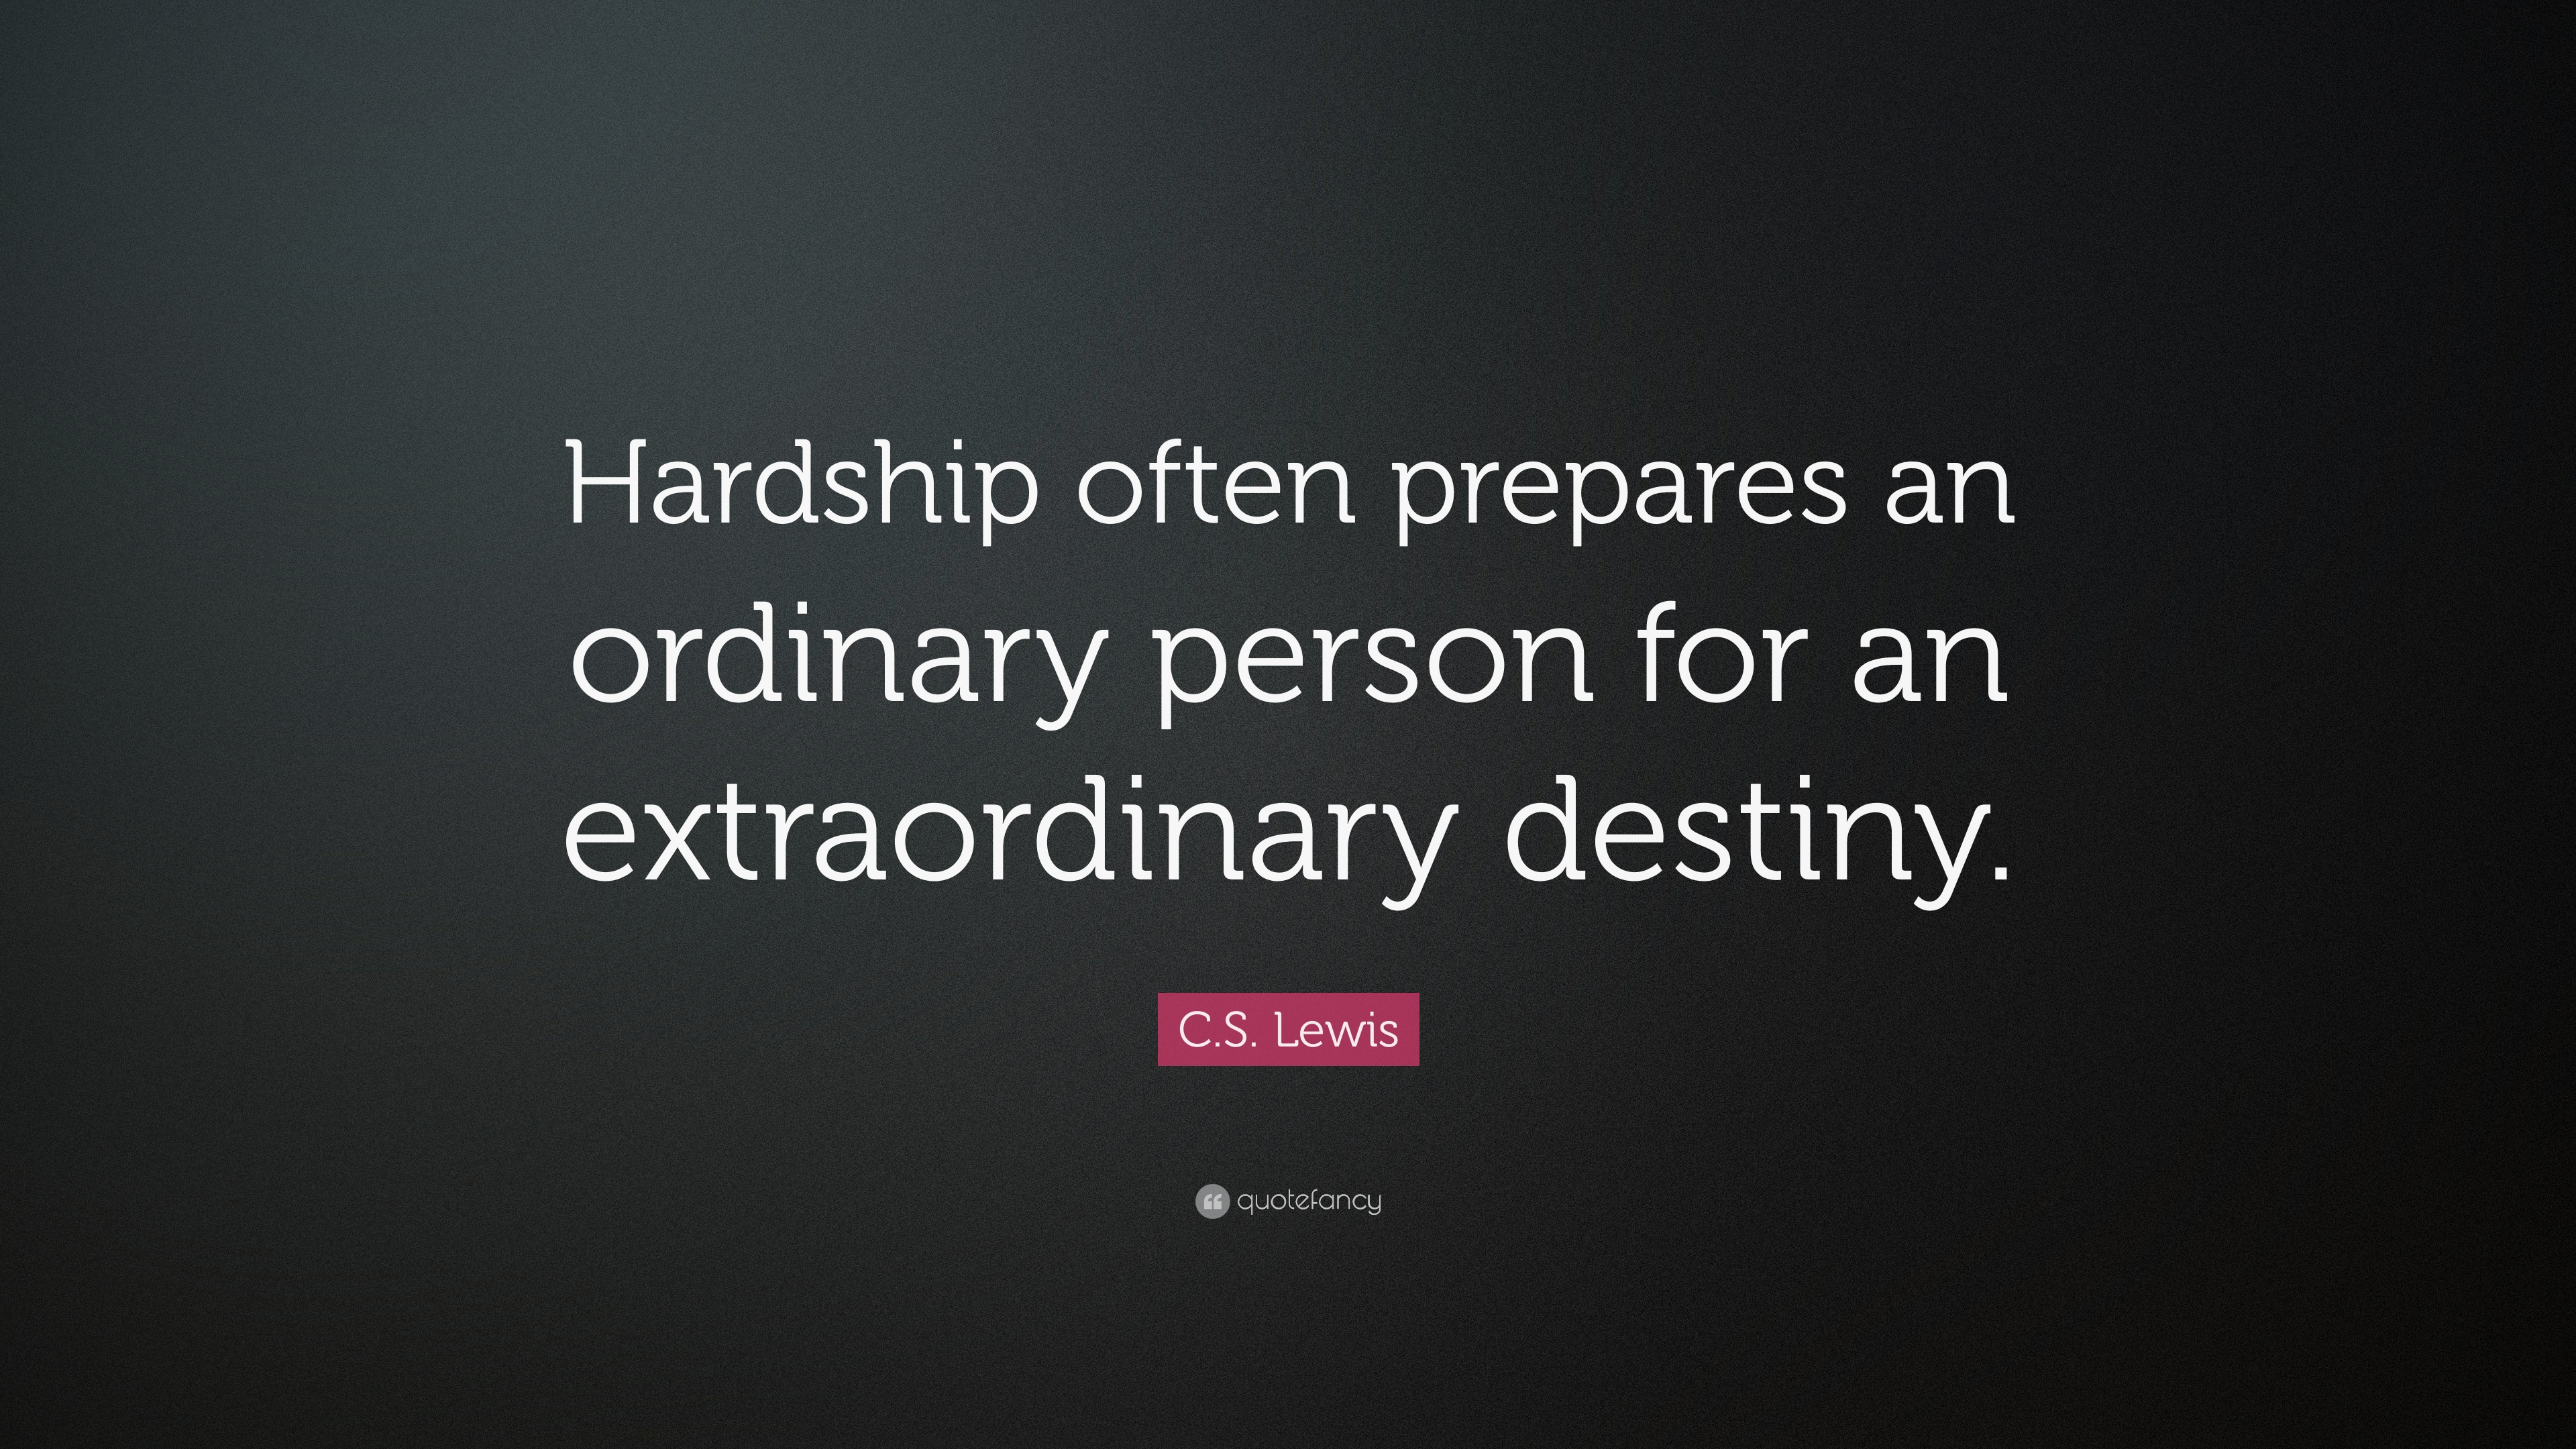 hardship friendship and people Friendship a friend is defined as a person whom one knows, likes, and trusts, therefore this is a friendship in every society in the world people have and follow this relationship and support it in some societies this relationship is given more importance than others.